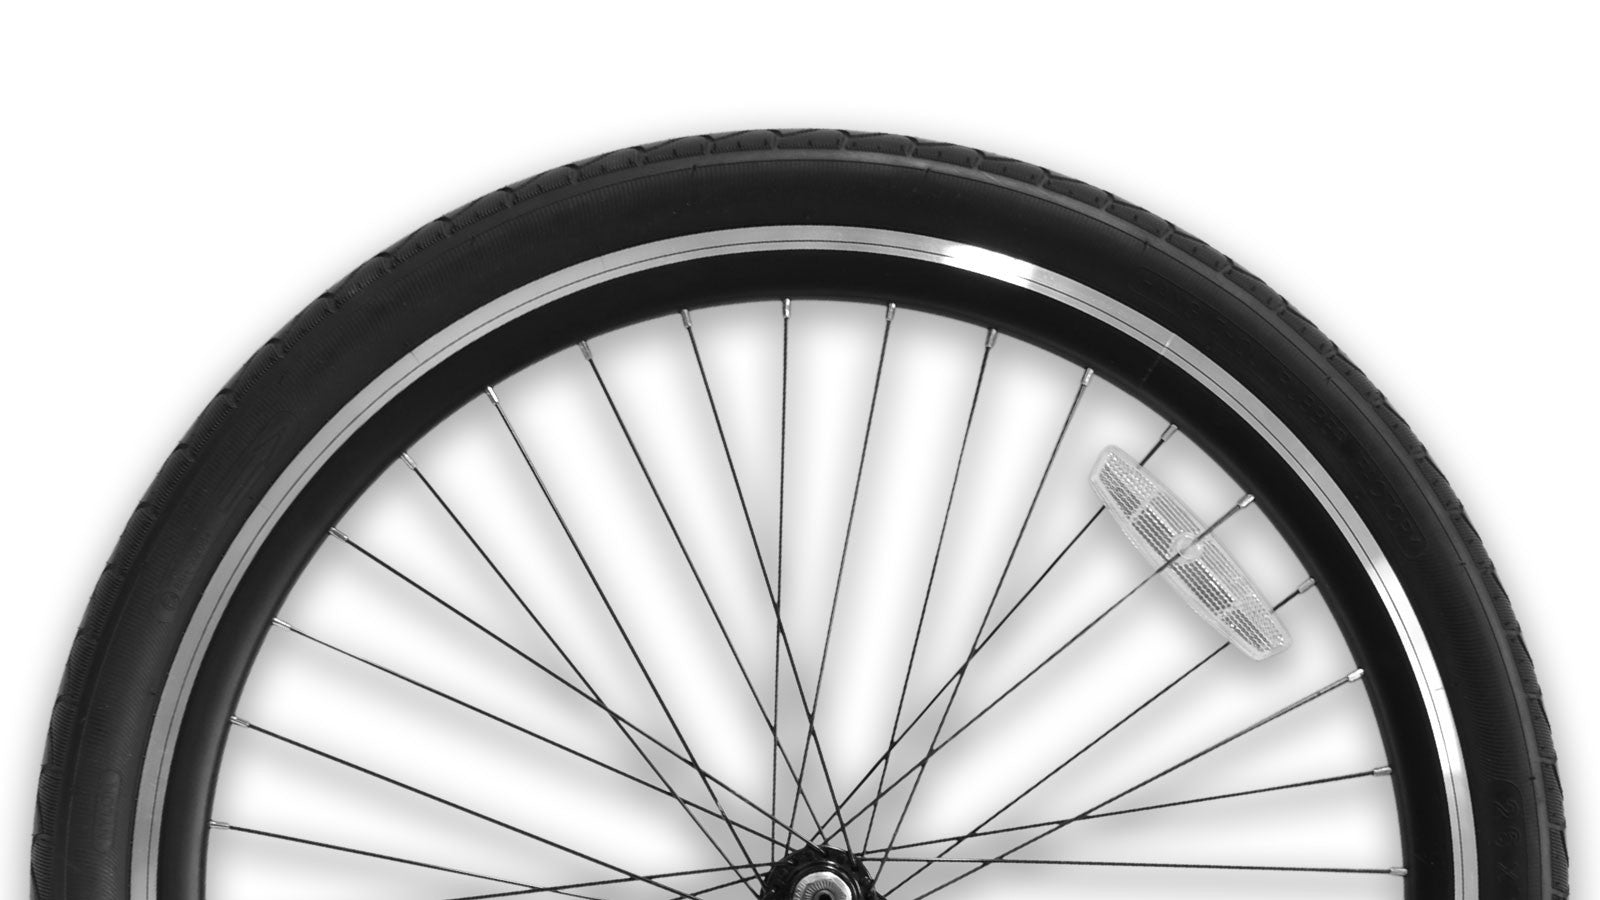 What's The Difference Between Beach Cruiser Wheels And Other Bike Tires?